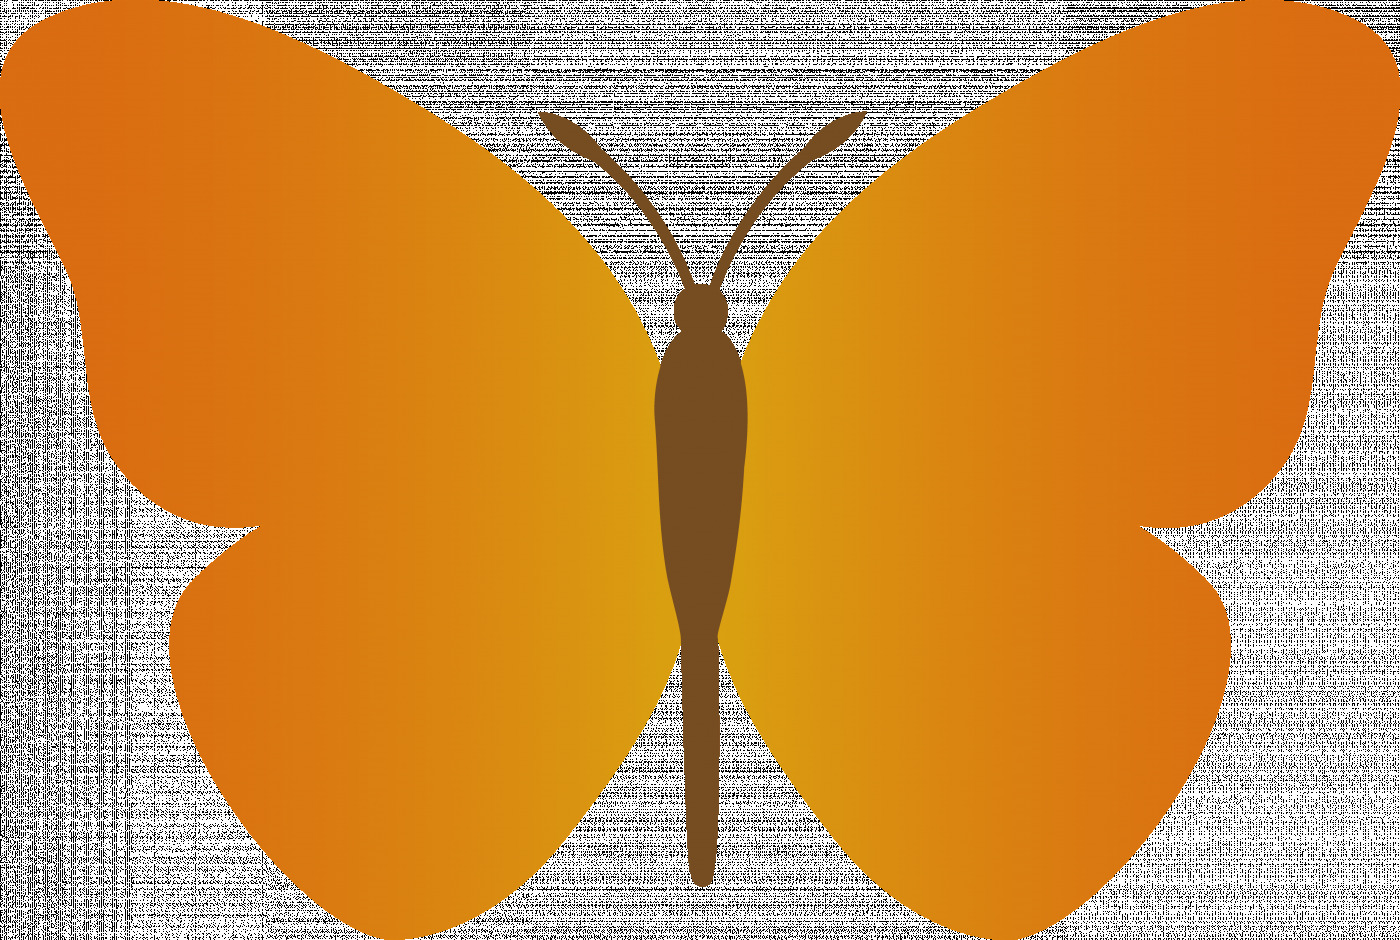 Butterfly clip art simple. Images of orange free